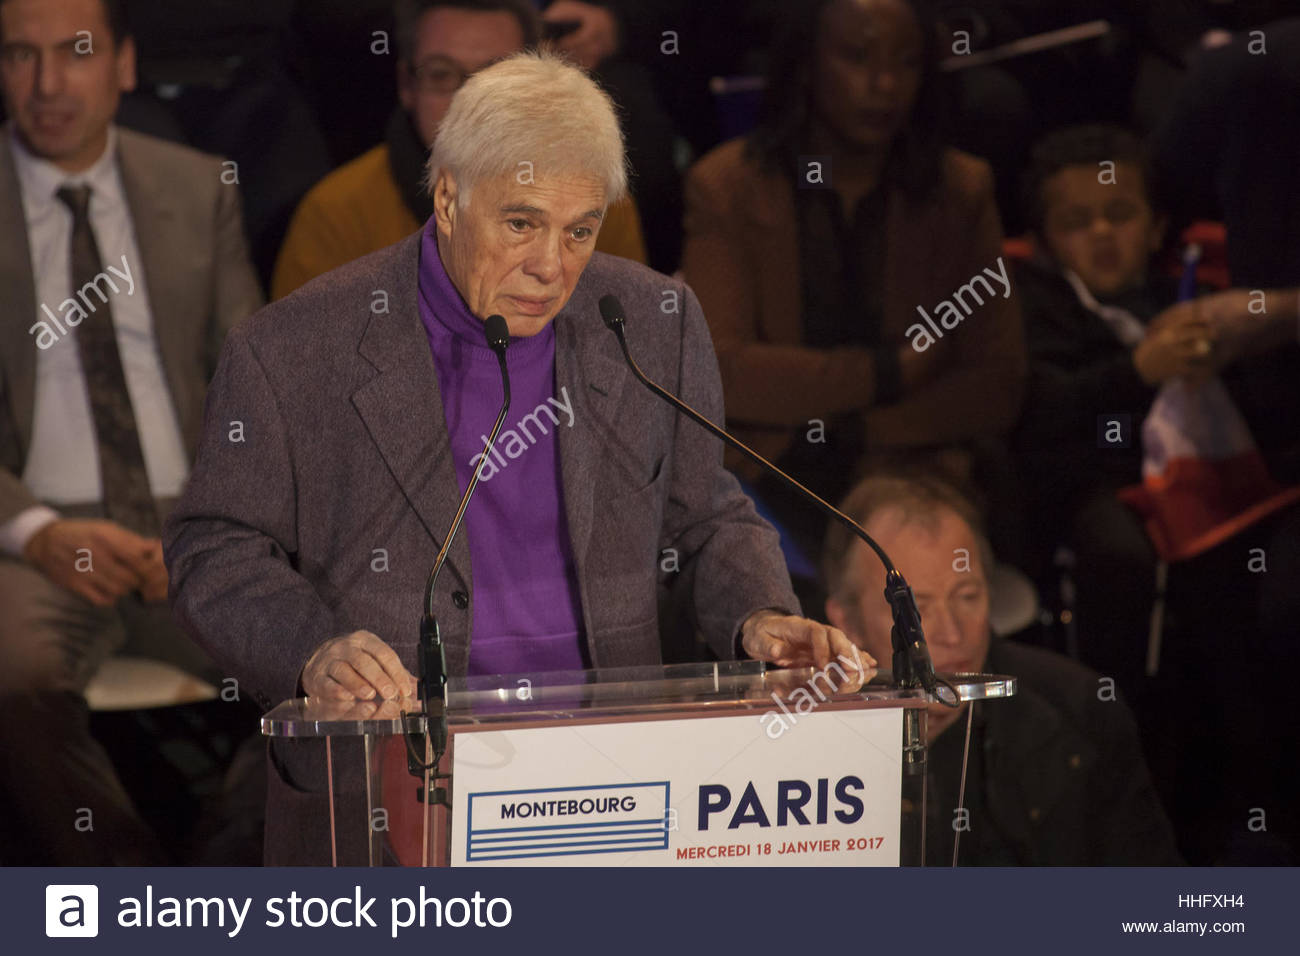 Paris, France. 18th Jan, 2017. French comedian Guy Bedos gives a speech during a meeting for former French economy - Stock Image